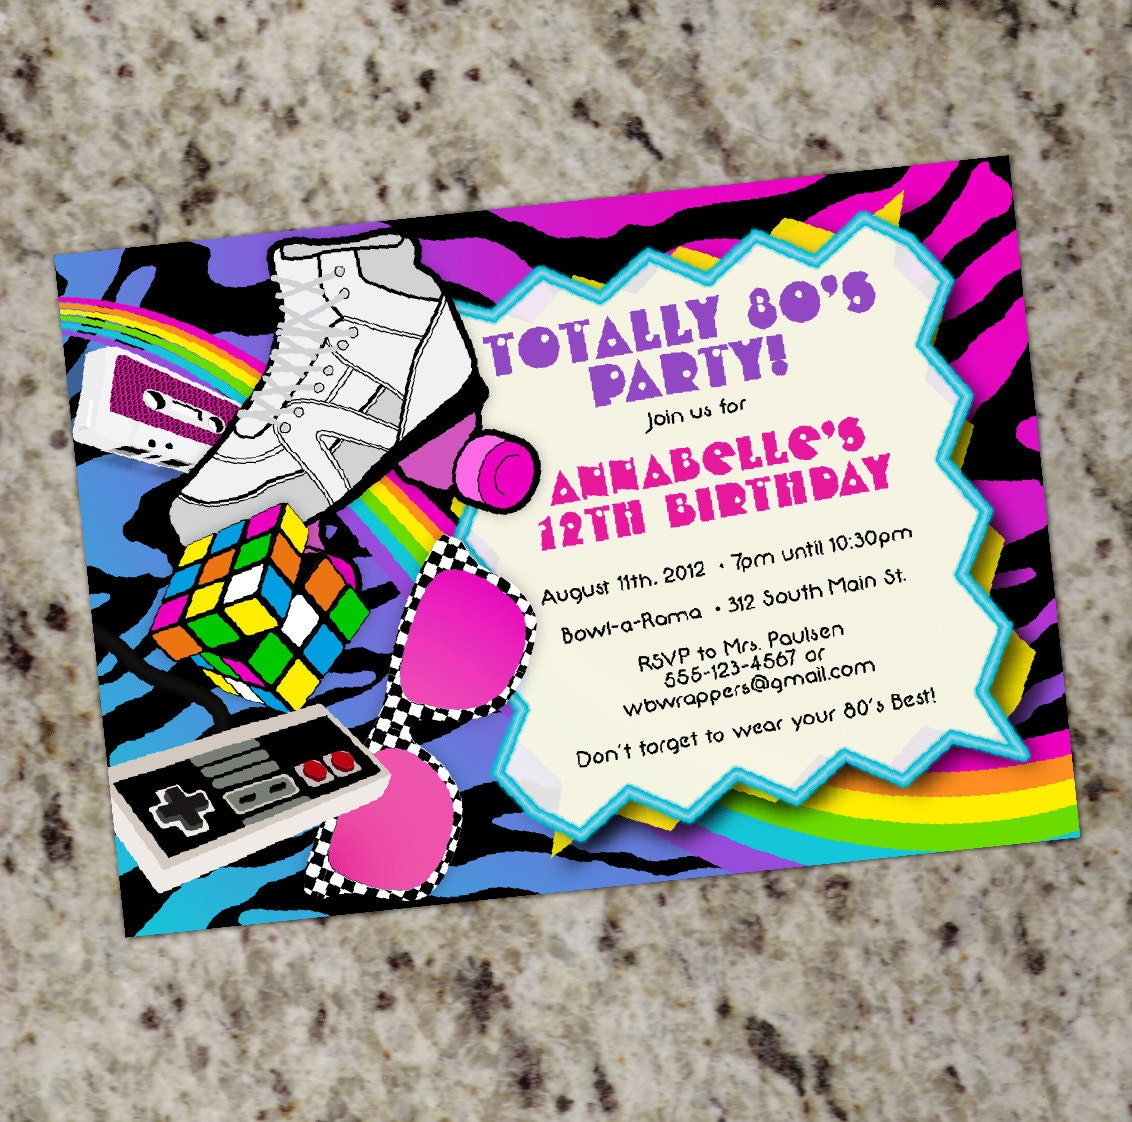 80s Birthday Party Invitations TOTALLY 80s 1980s Themed